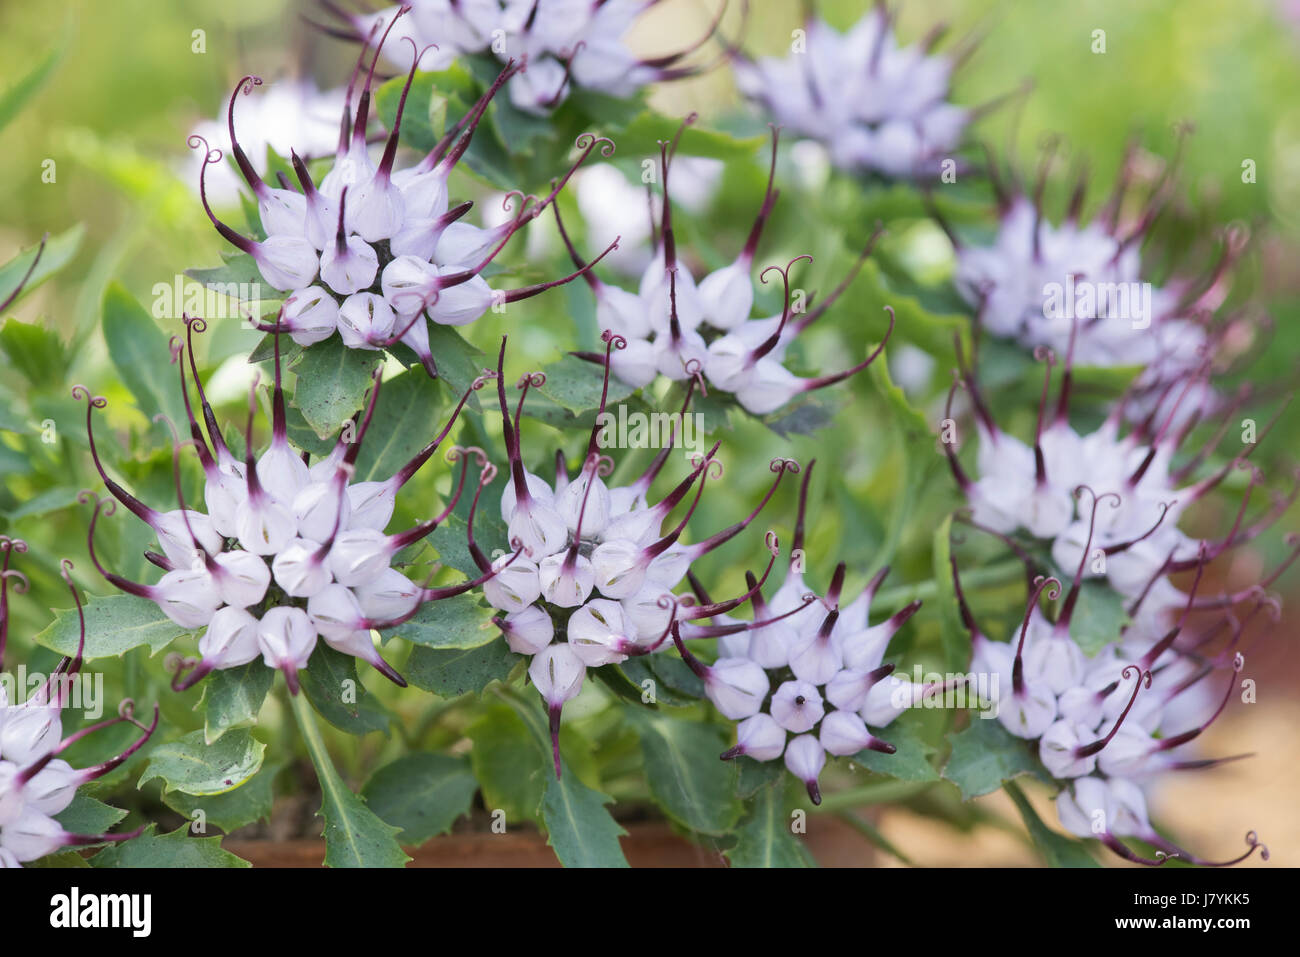 Purple Flowers Spiky Leaves Stock Photos Purple Flowers Spiky